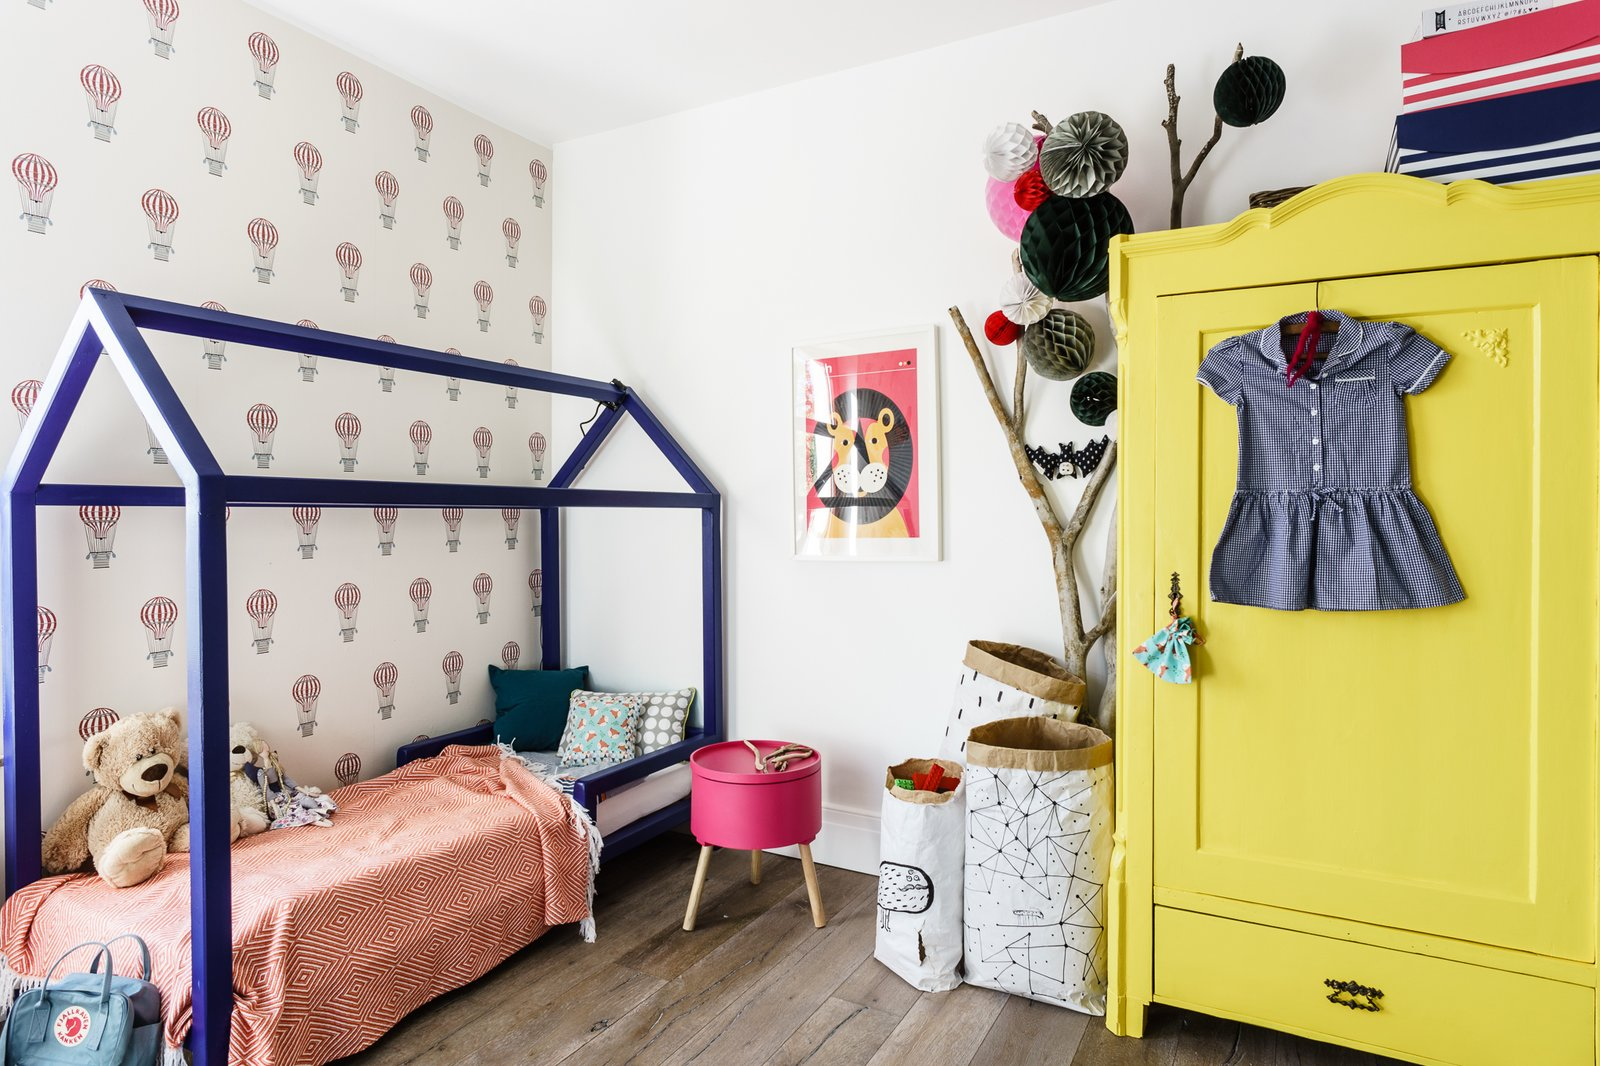 Tagged: Kids Room, Bedroom, Playroom, Bed, Light Hardwood Floor, Pre-Teen Age, Toddler Age, Dresser, and Neutral Gender.  Loft in Poland by Lucyna Kołodziejska | INTERIORS FACTORY